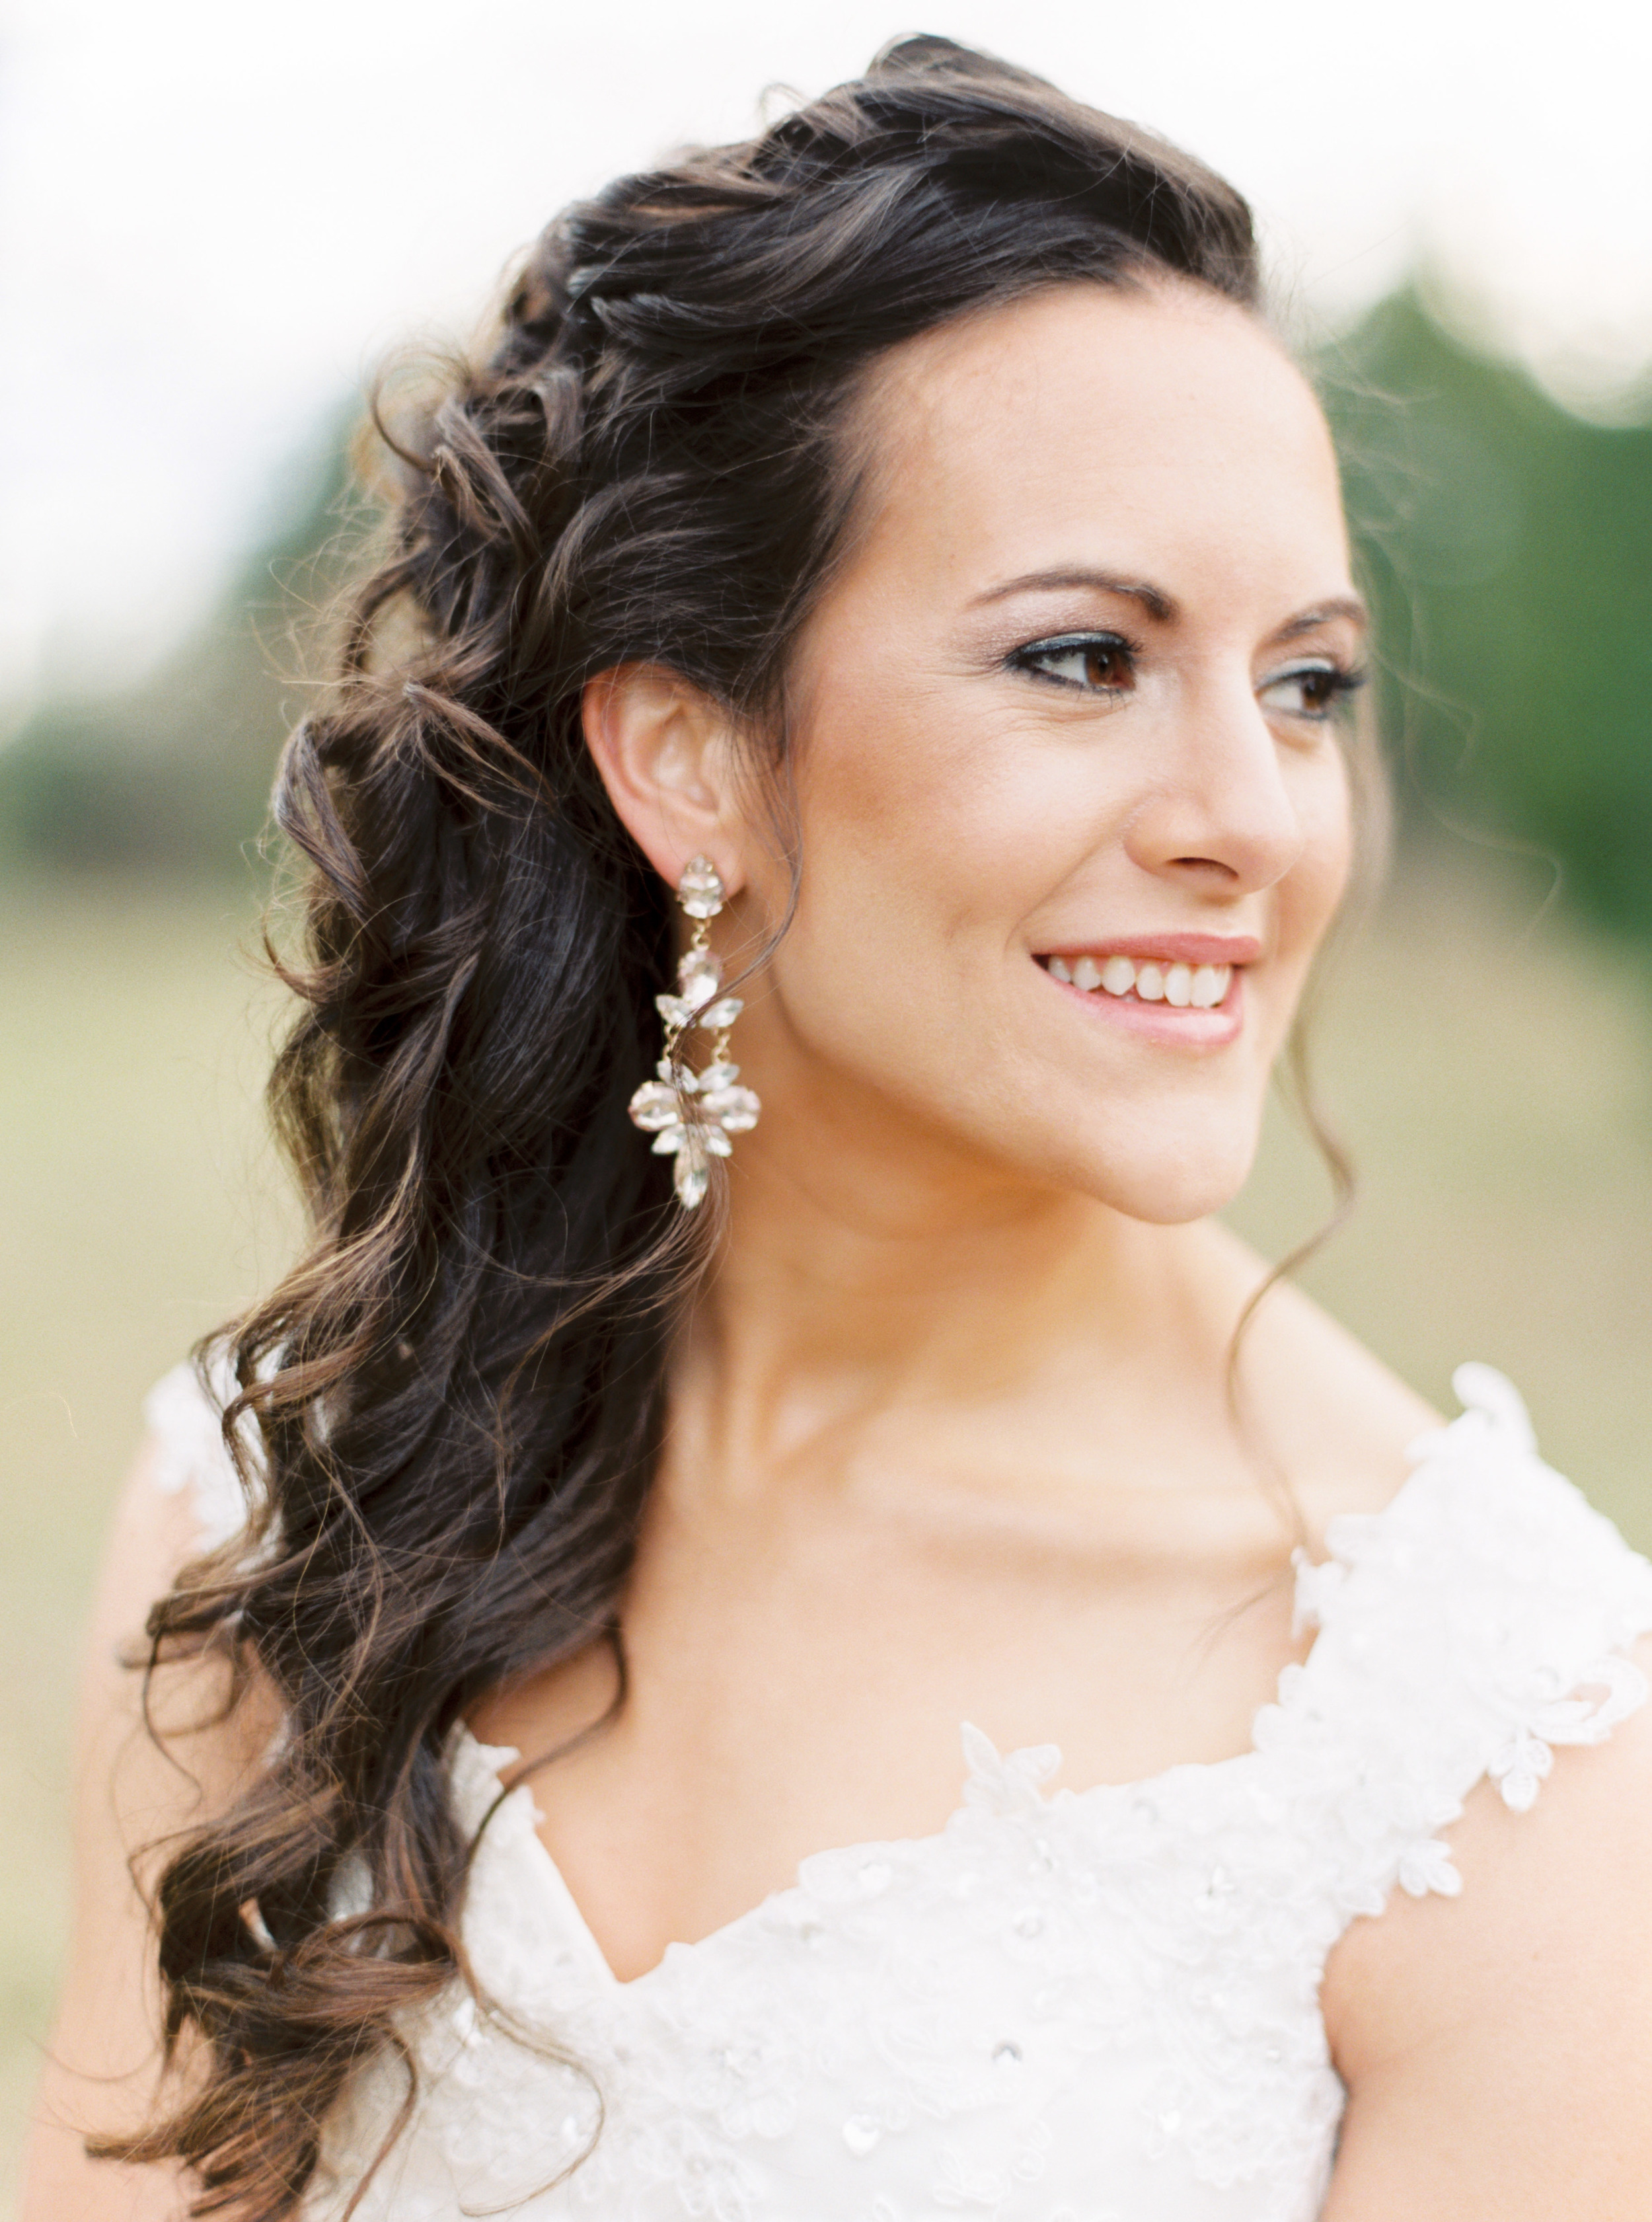 Sarah Best Photography - Emily's Bridals-110.jpg